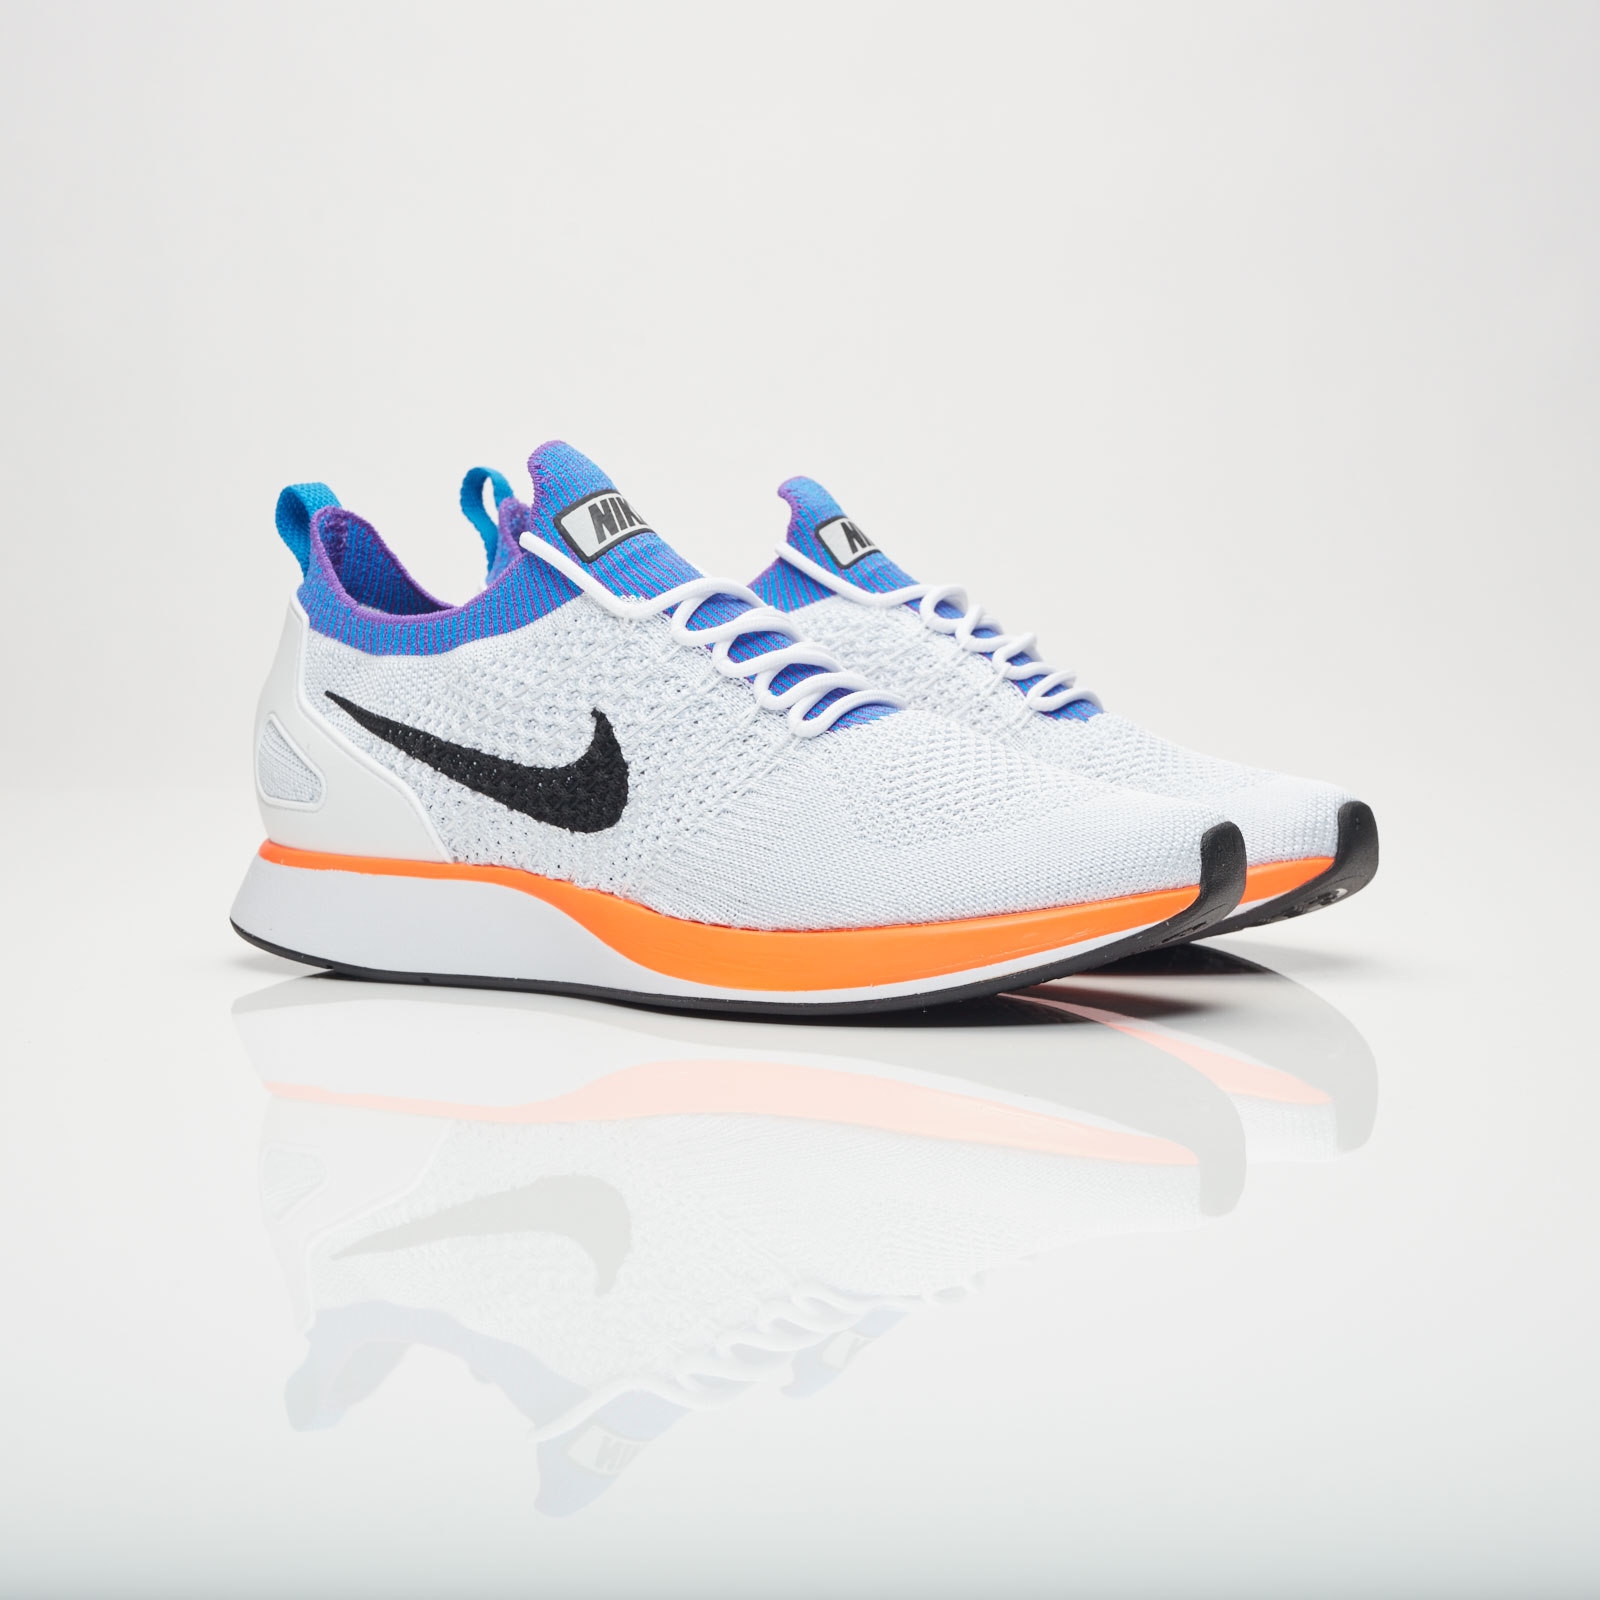 separation shoes 6e60c e64d3 Nike Air Zoom Mariah Flyknit Racer - 918264-100 - Sneakersnstuff I ...